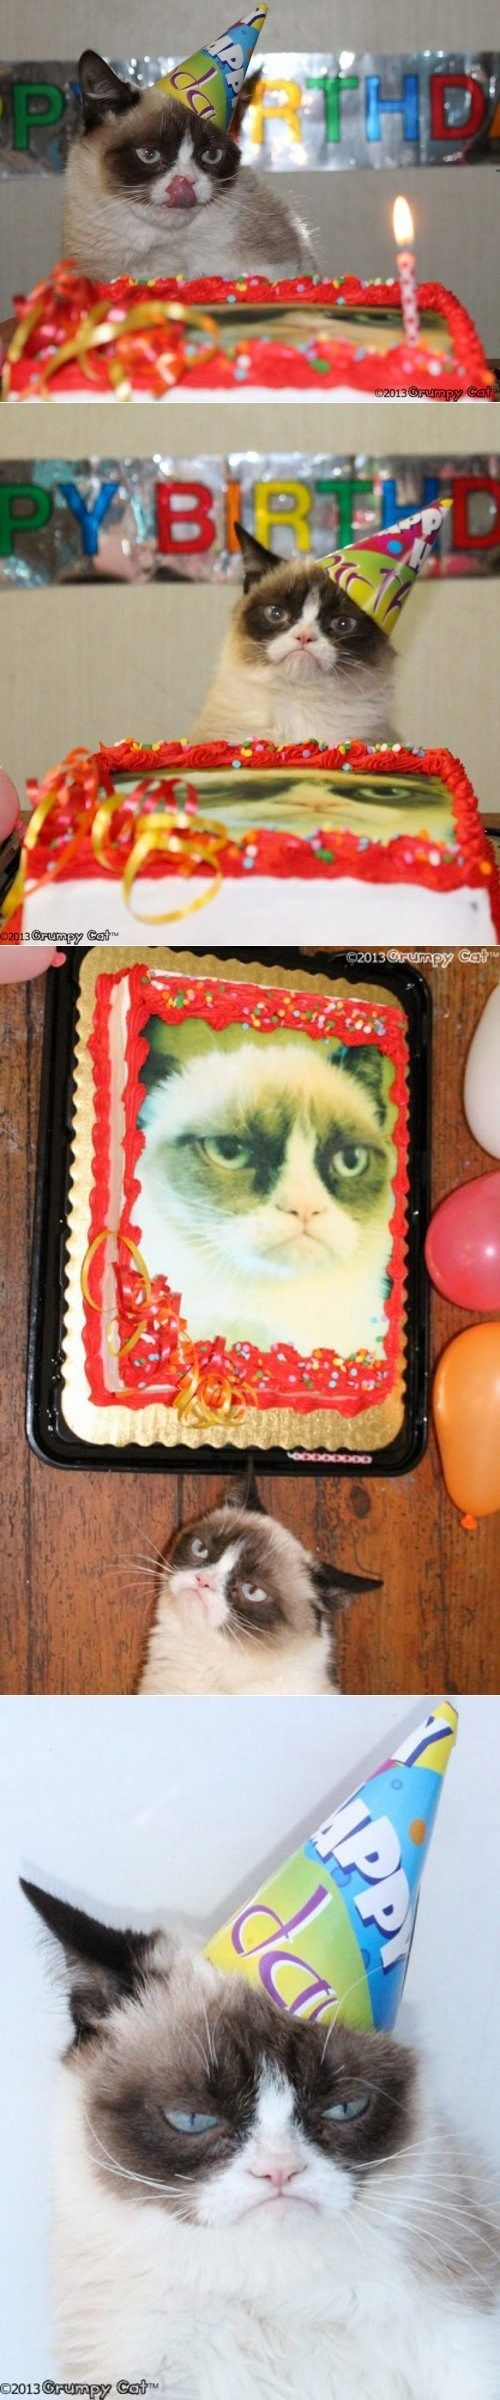 """Grumpy Cat's 1st Birthday! She looks like she's thinking, """"I didn't even want this!"""""""